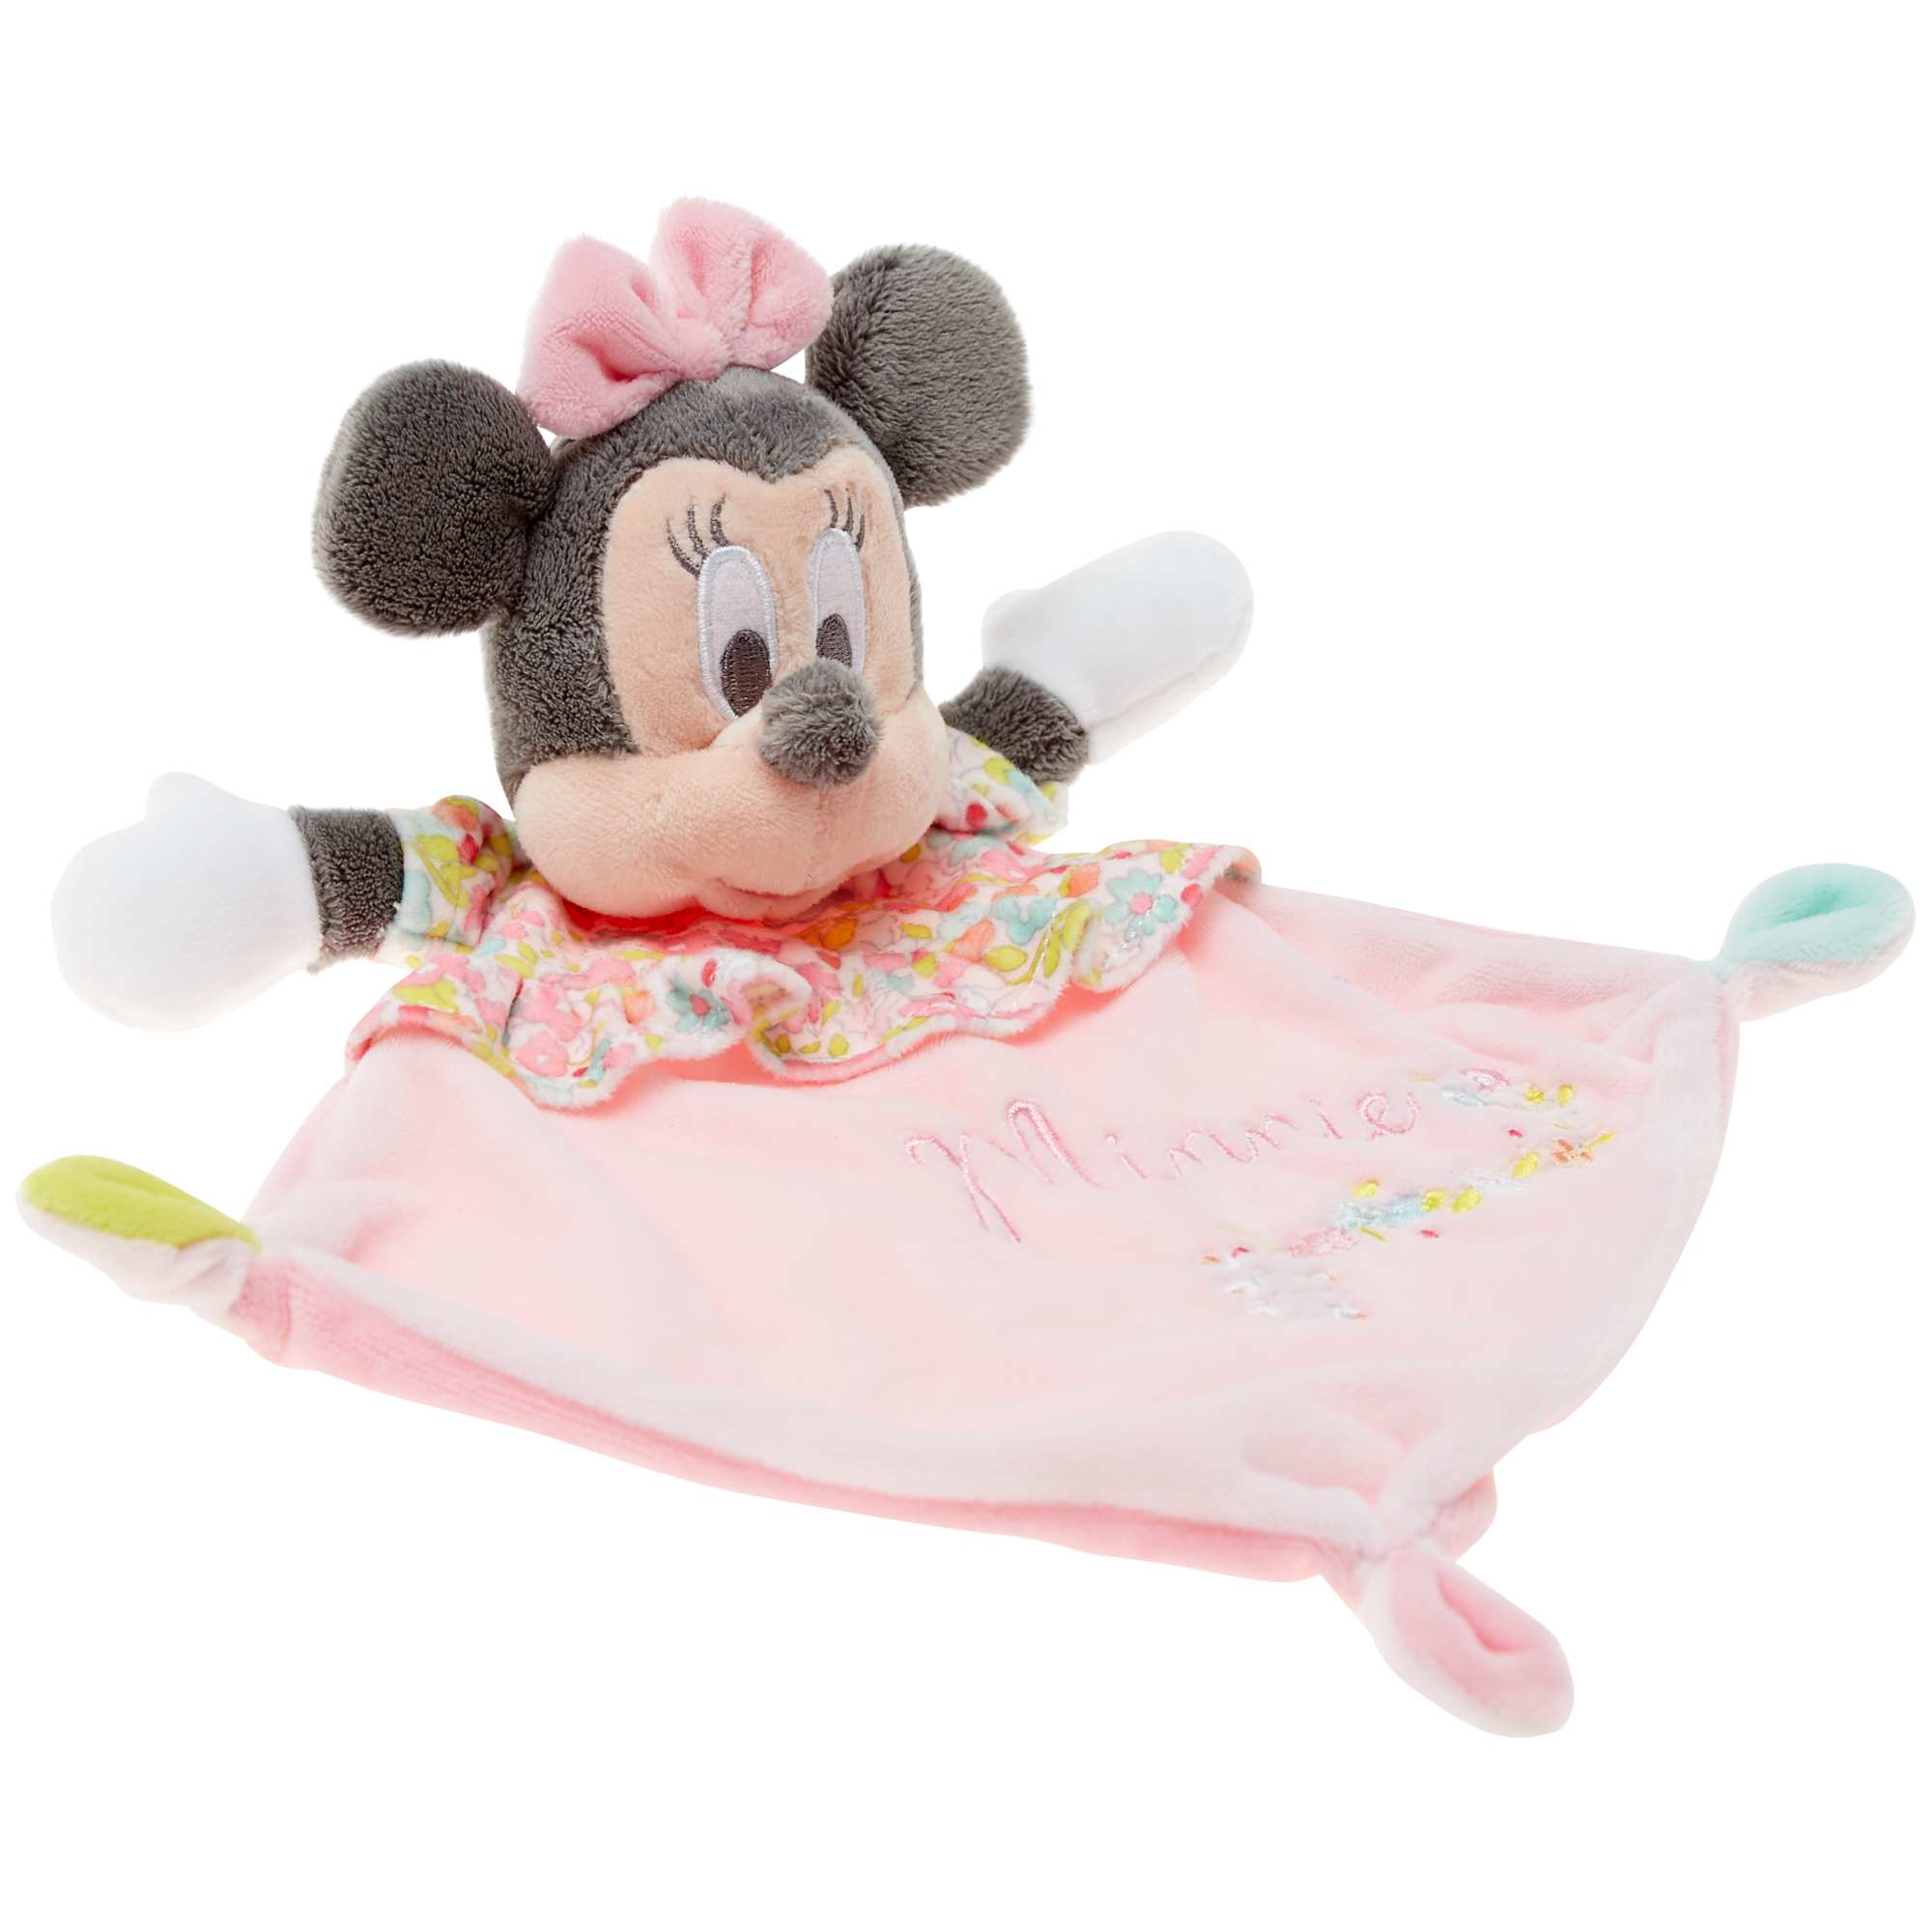 doudou 39 minnie 39 della 39 disney 39 neonata rosa kiabi 9 00. Black Bedroom Furniture Sets. Home Design Ideas